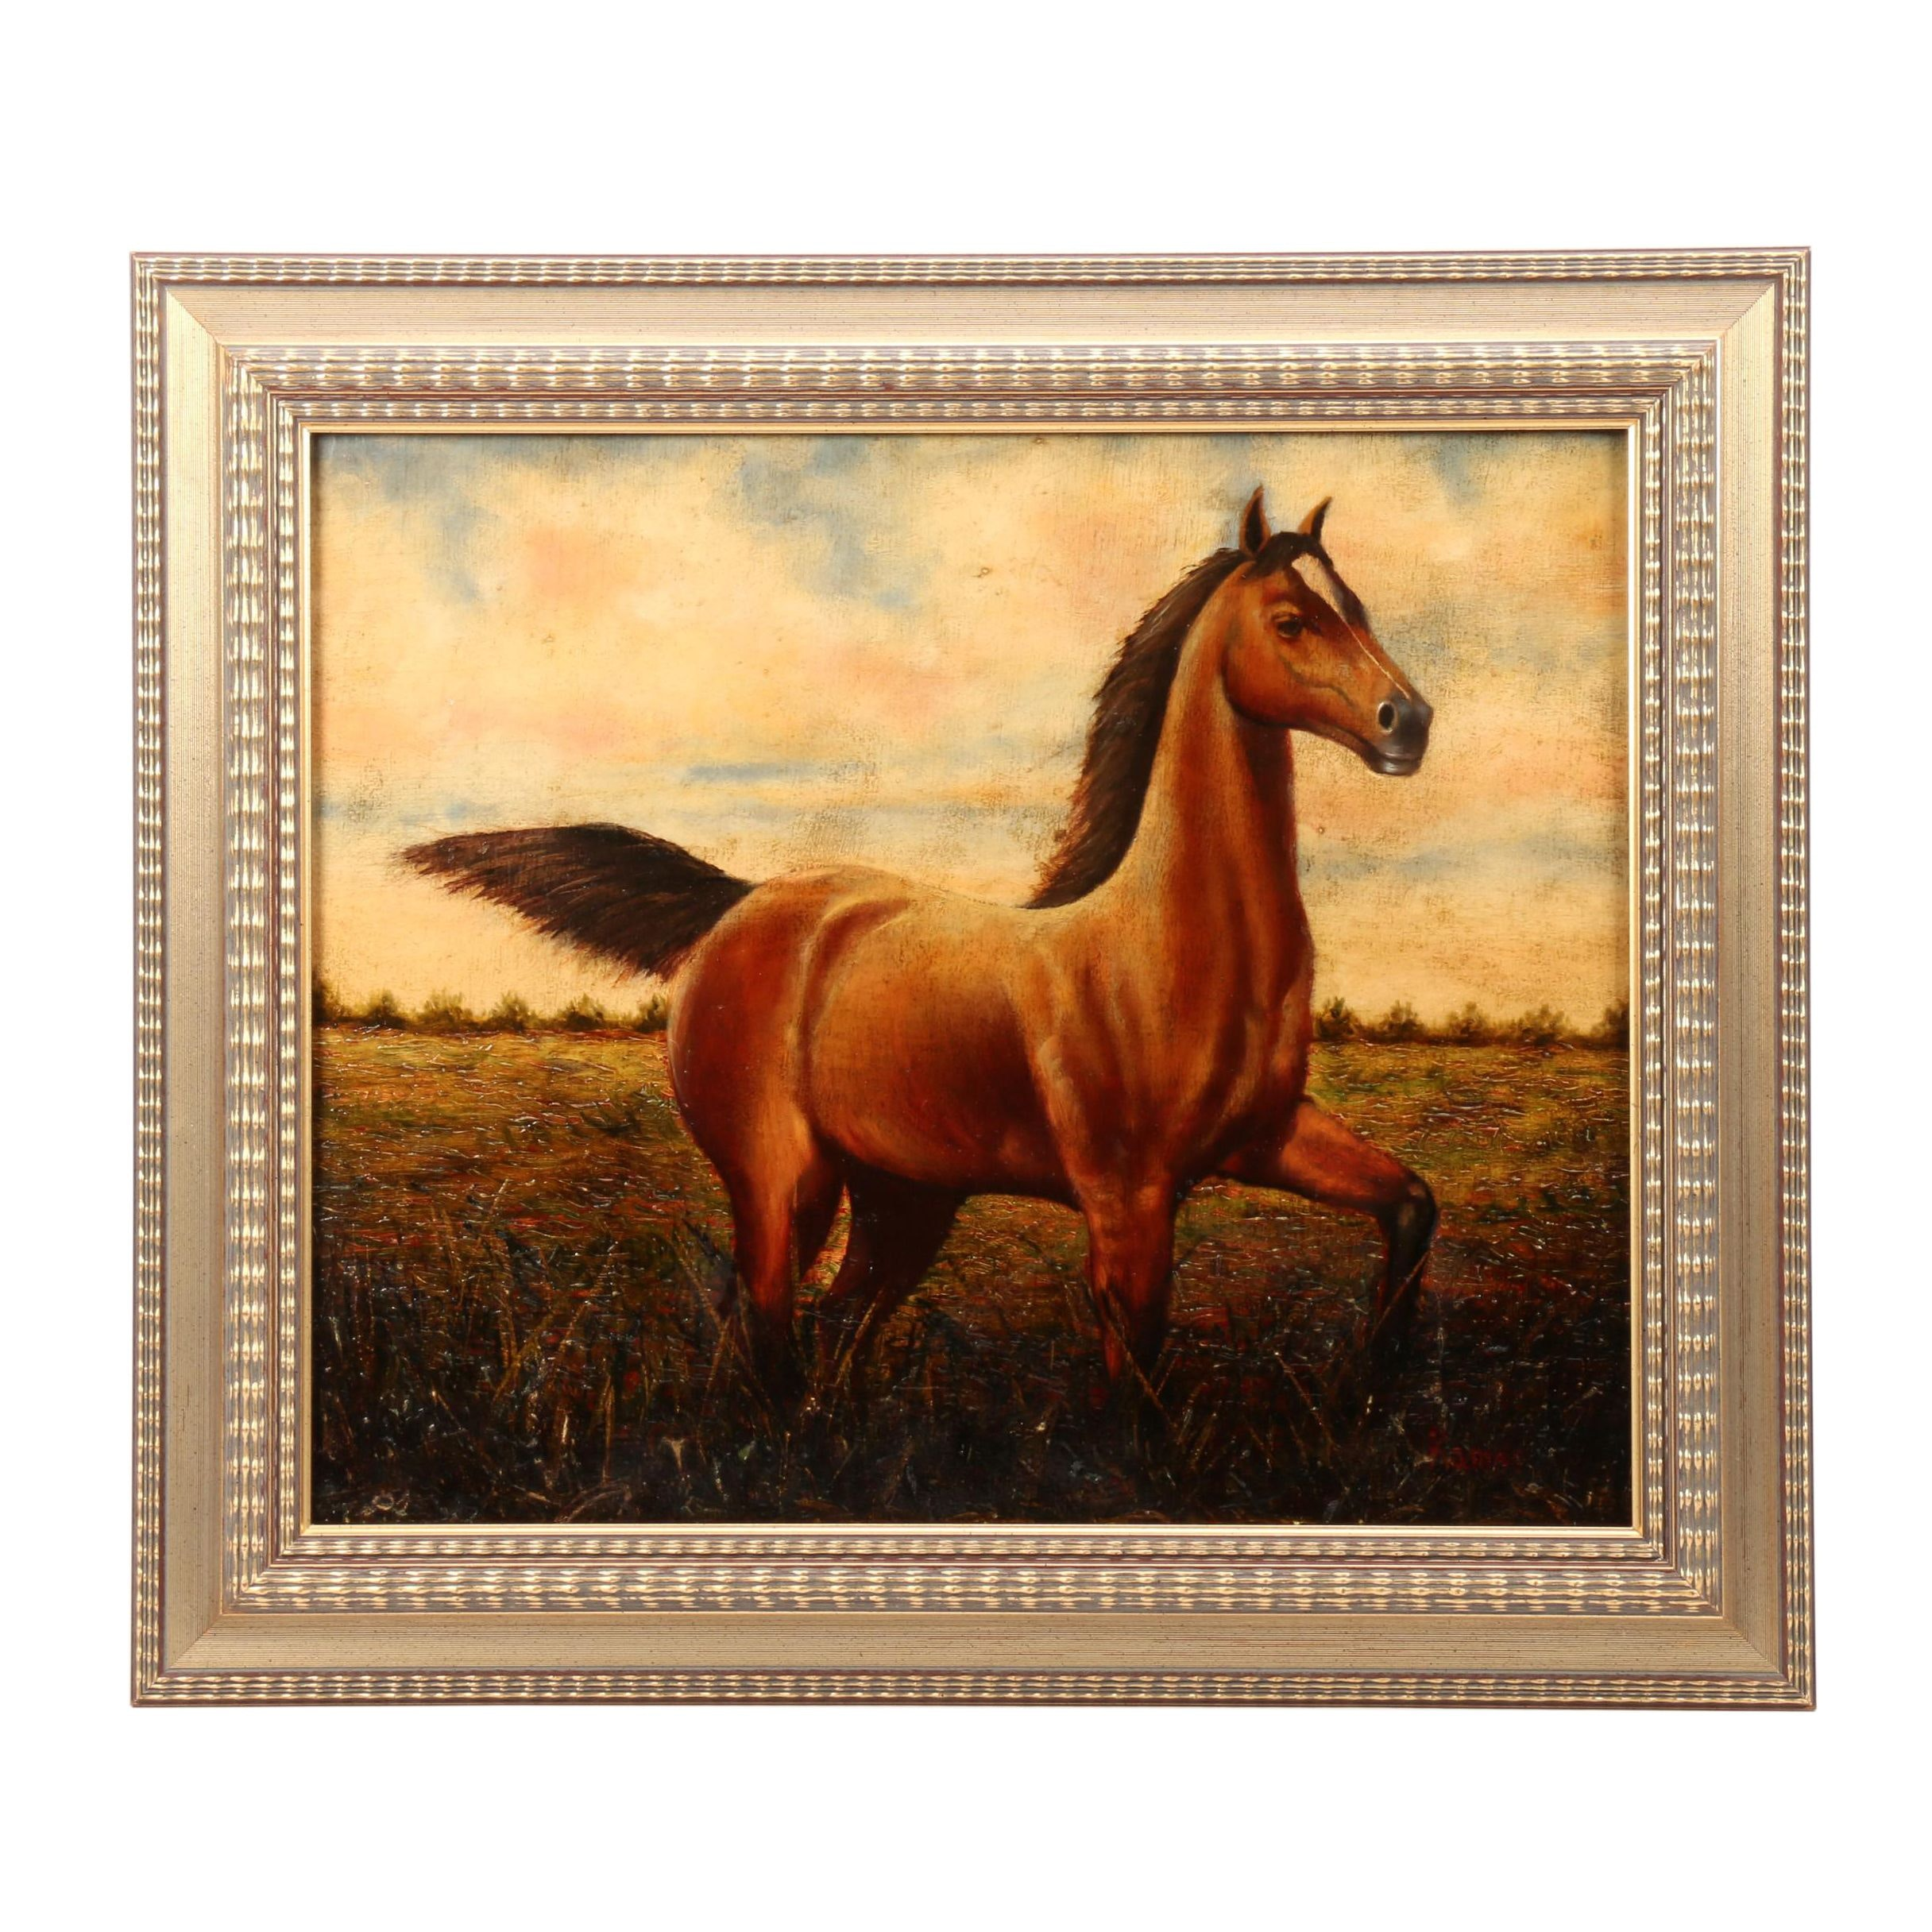 20th-Century Equine Oil Painting on Canvas